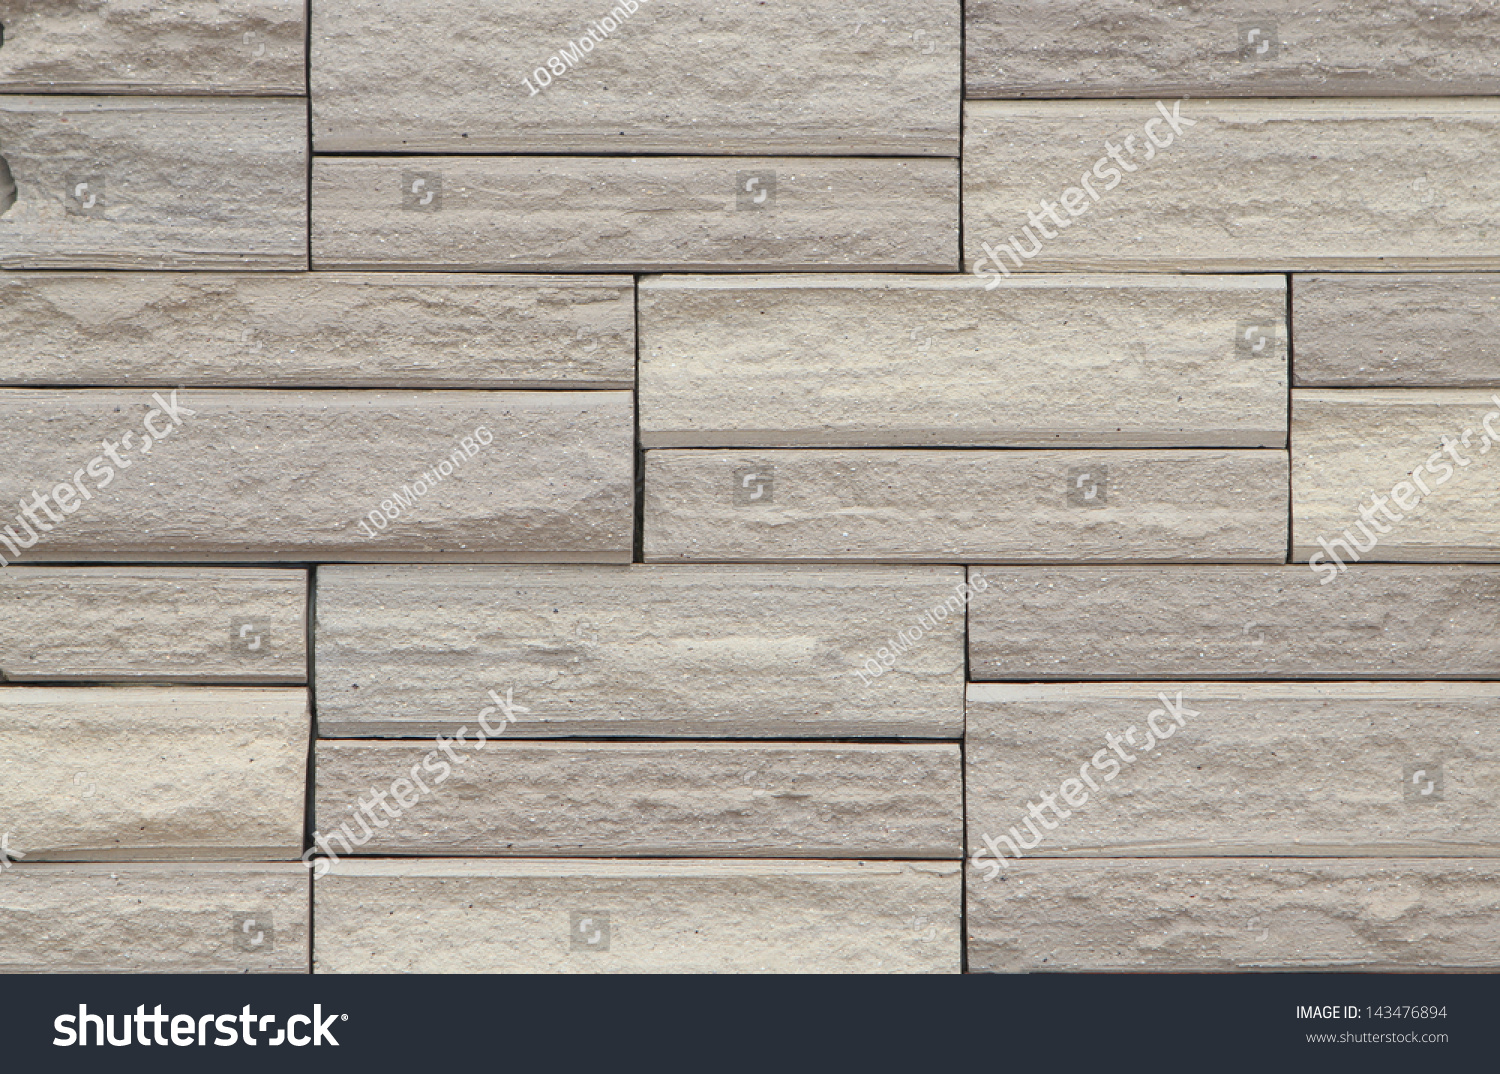 new style modern wall texture stock photo 143476894 - shutterstock